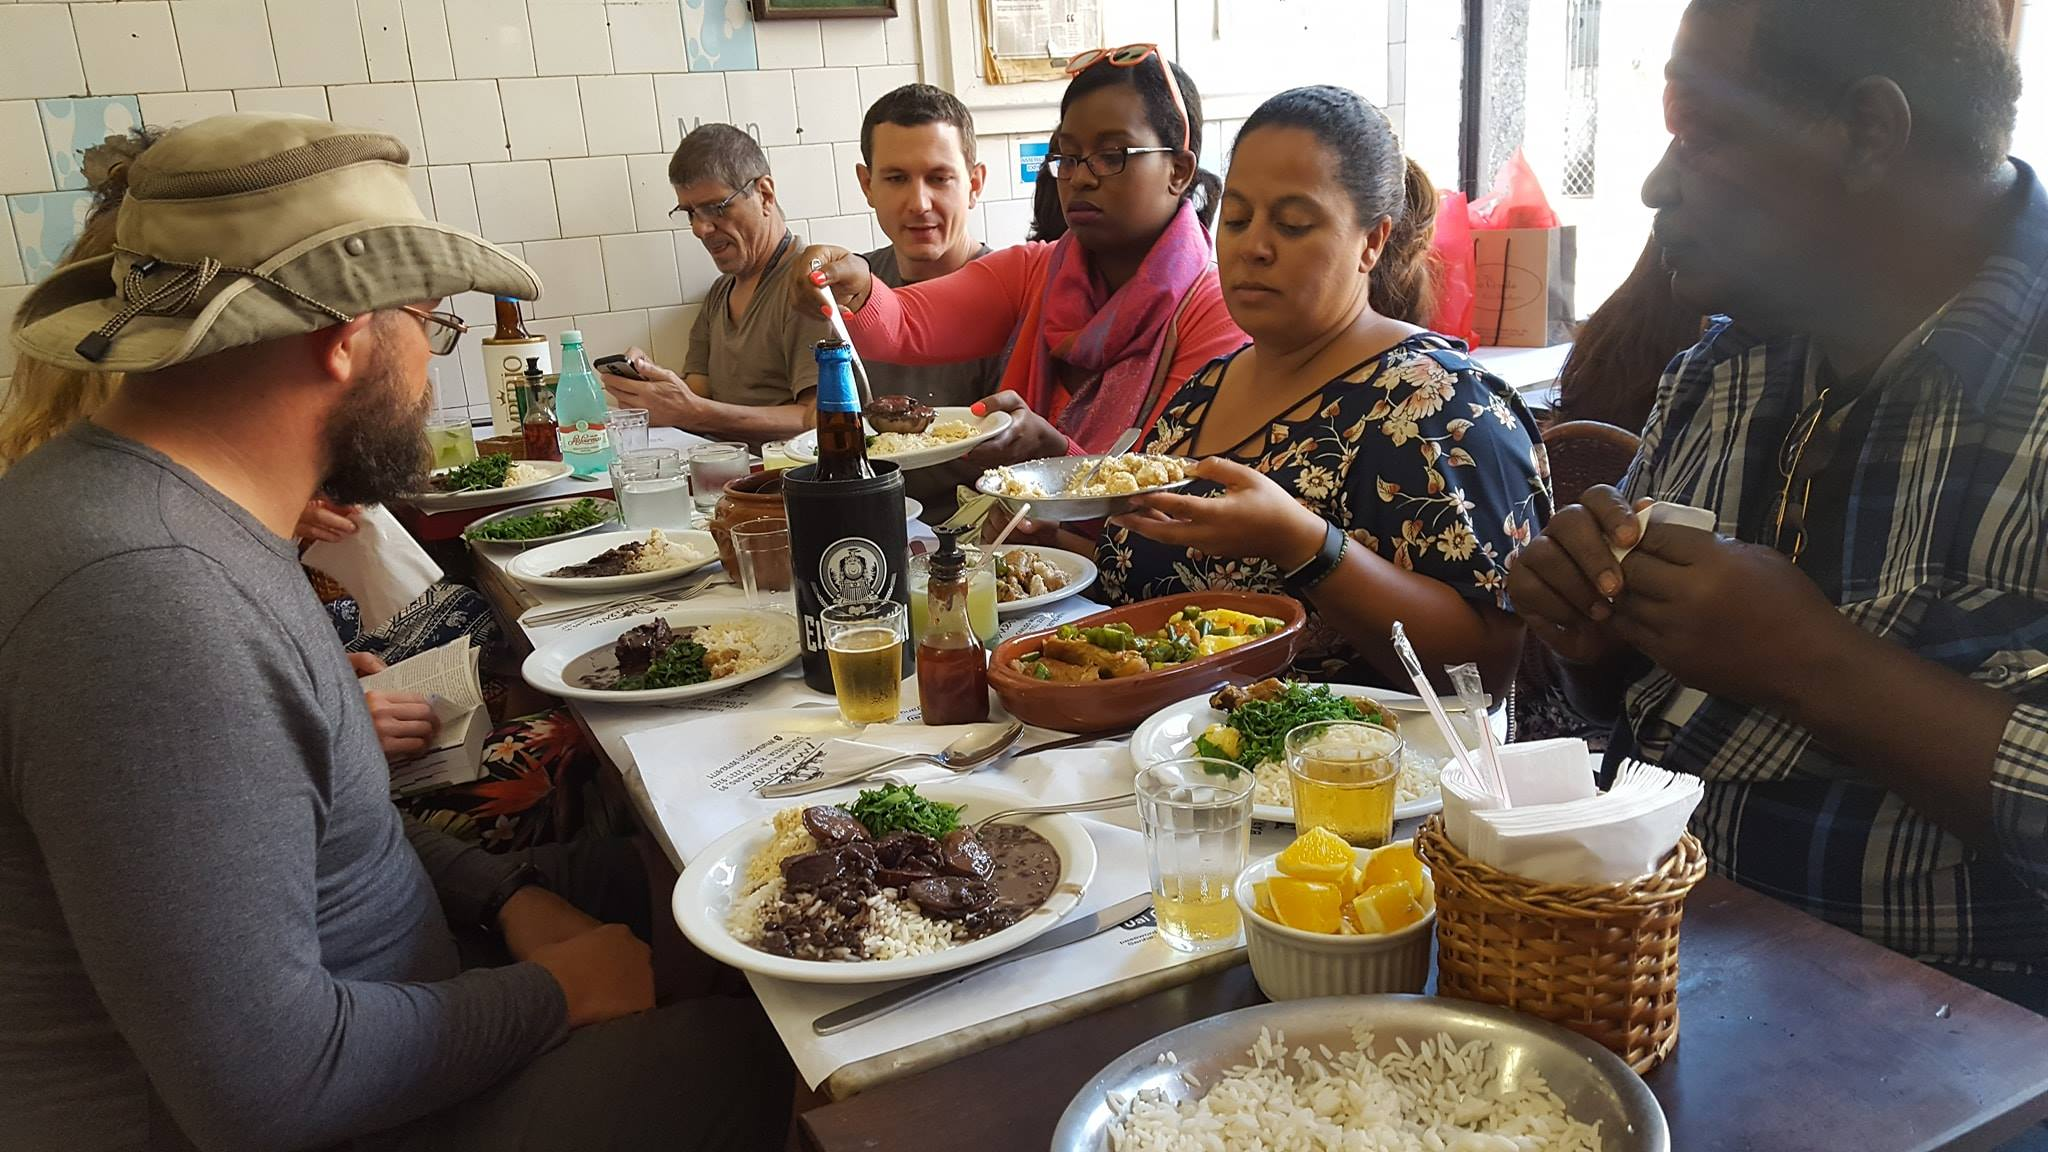 Delicious moment in Santa teresa: Feijoada.